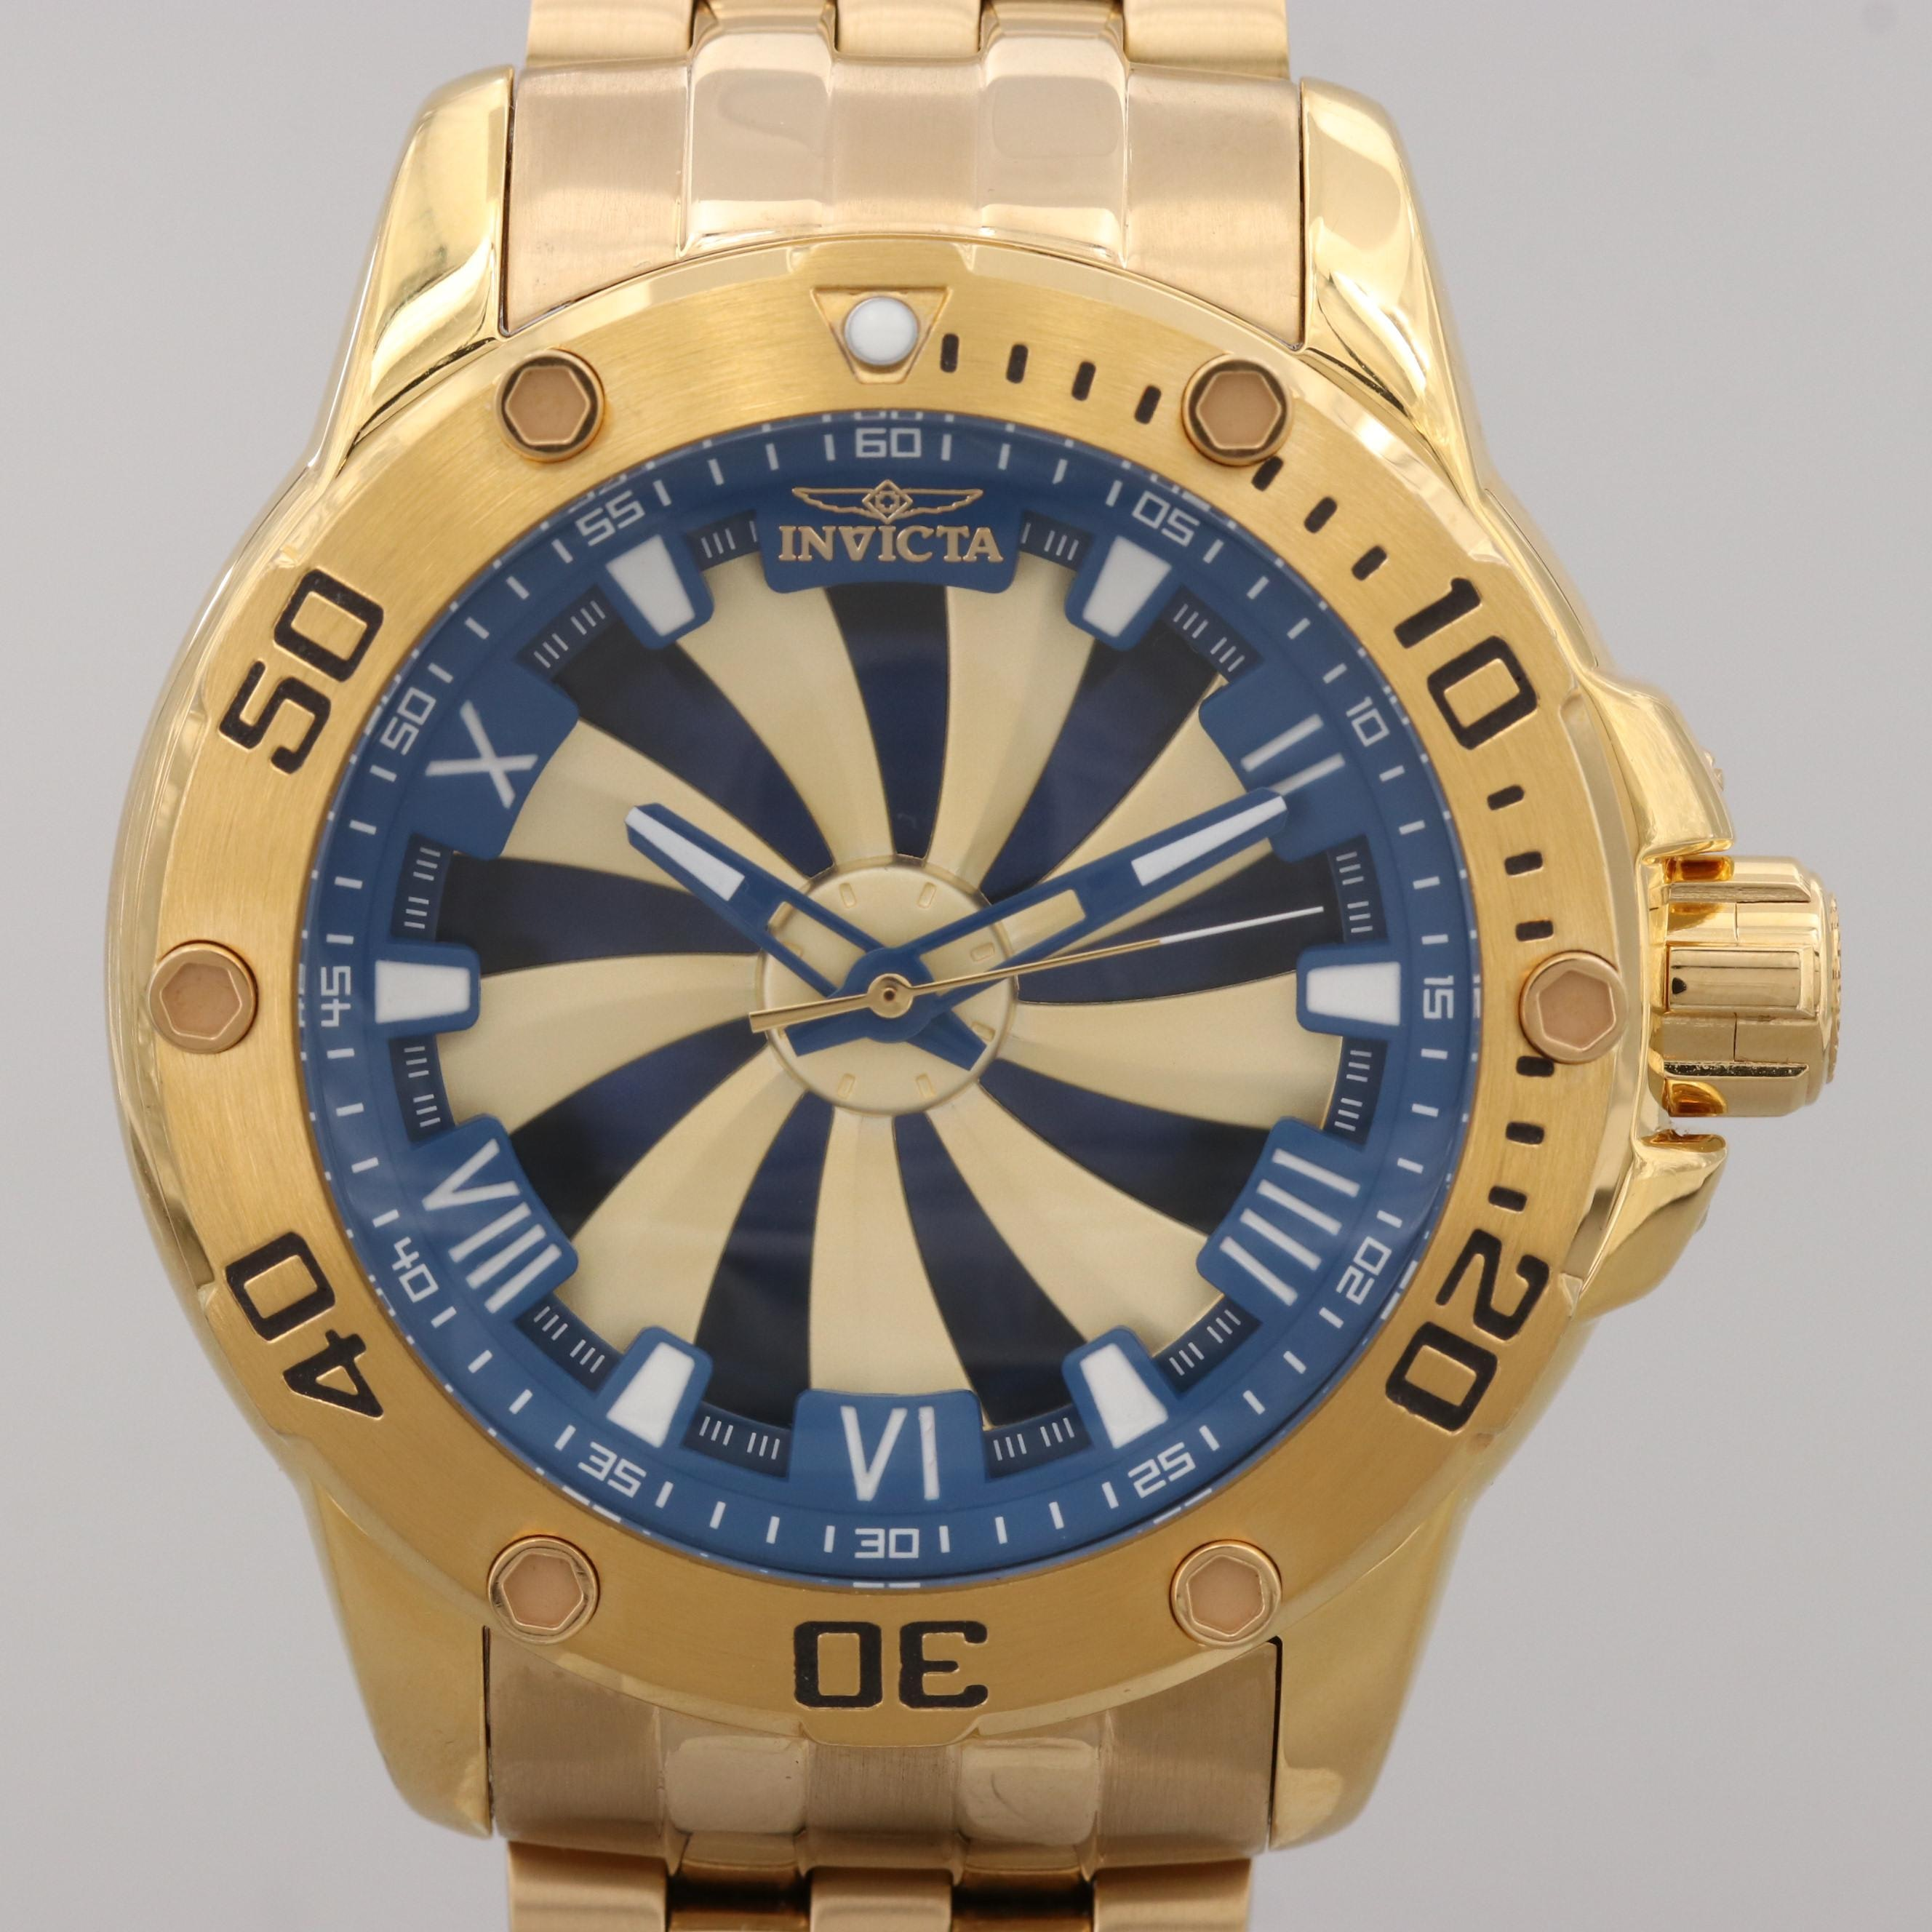 Invicta Speedway Gold Tone Automatic Wristwatch With Watch Case